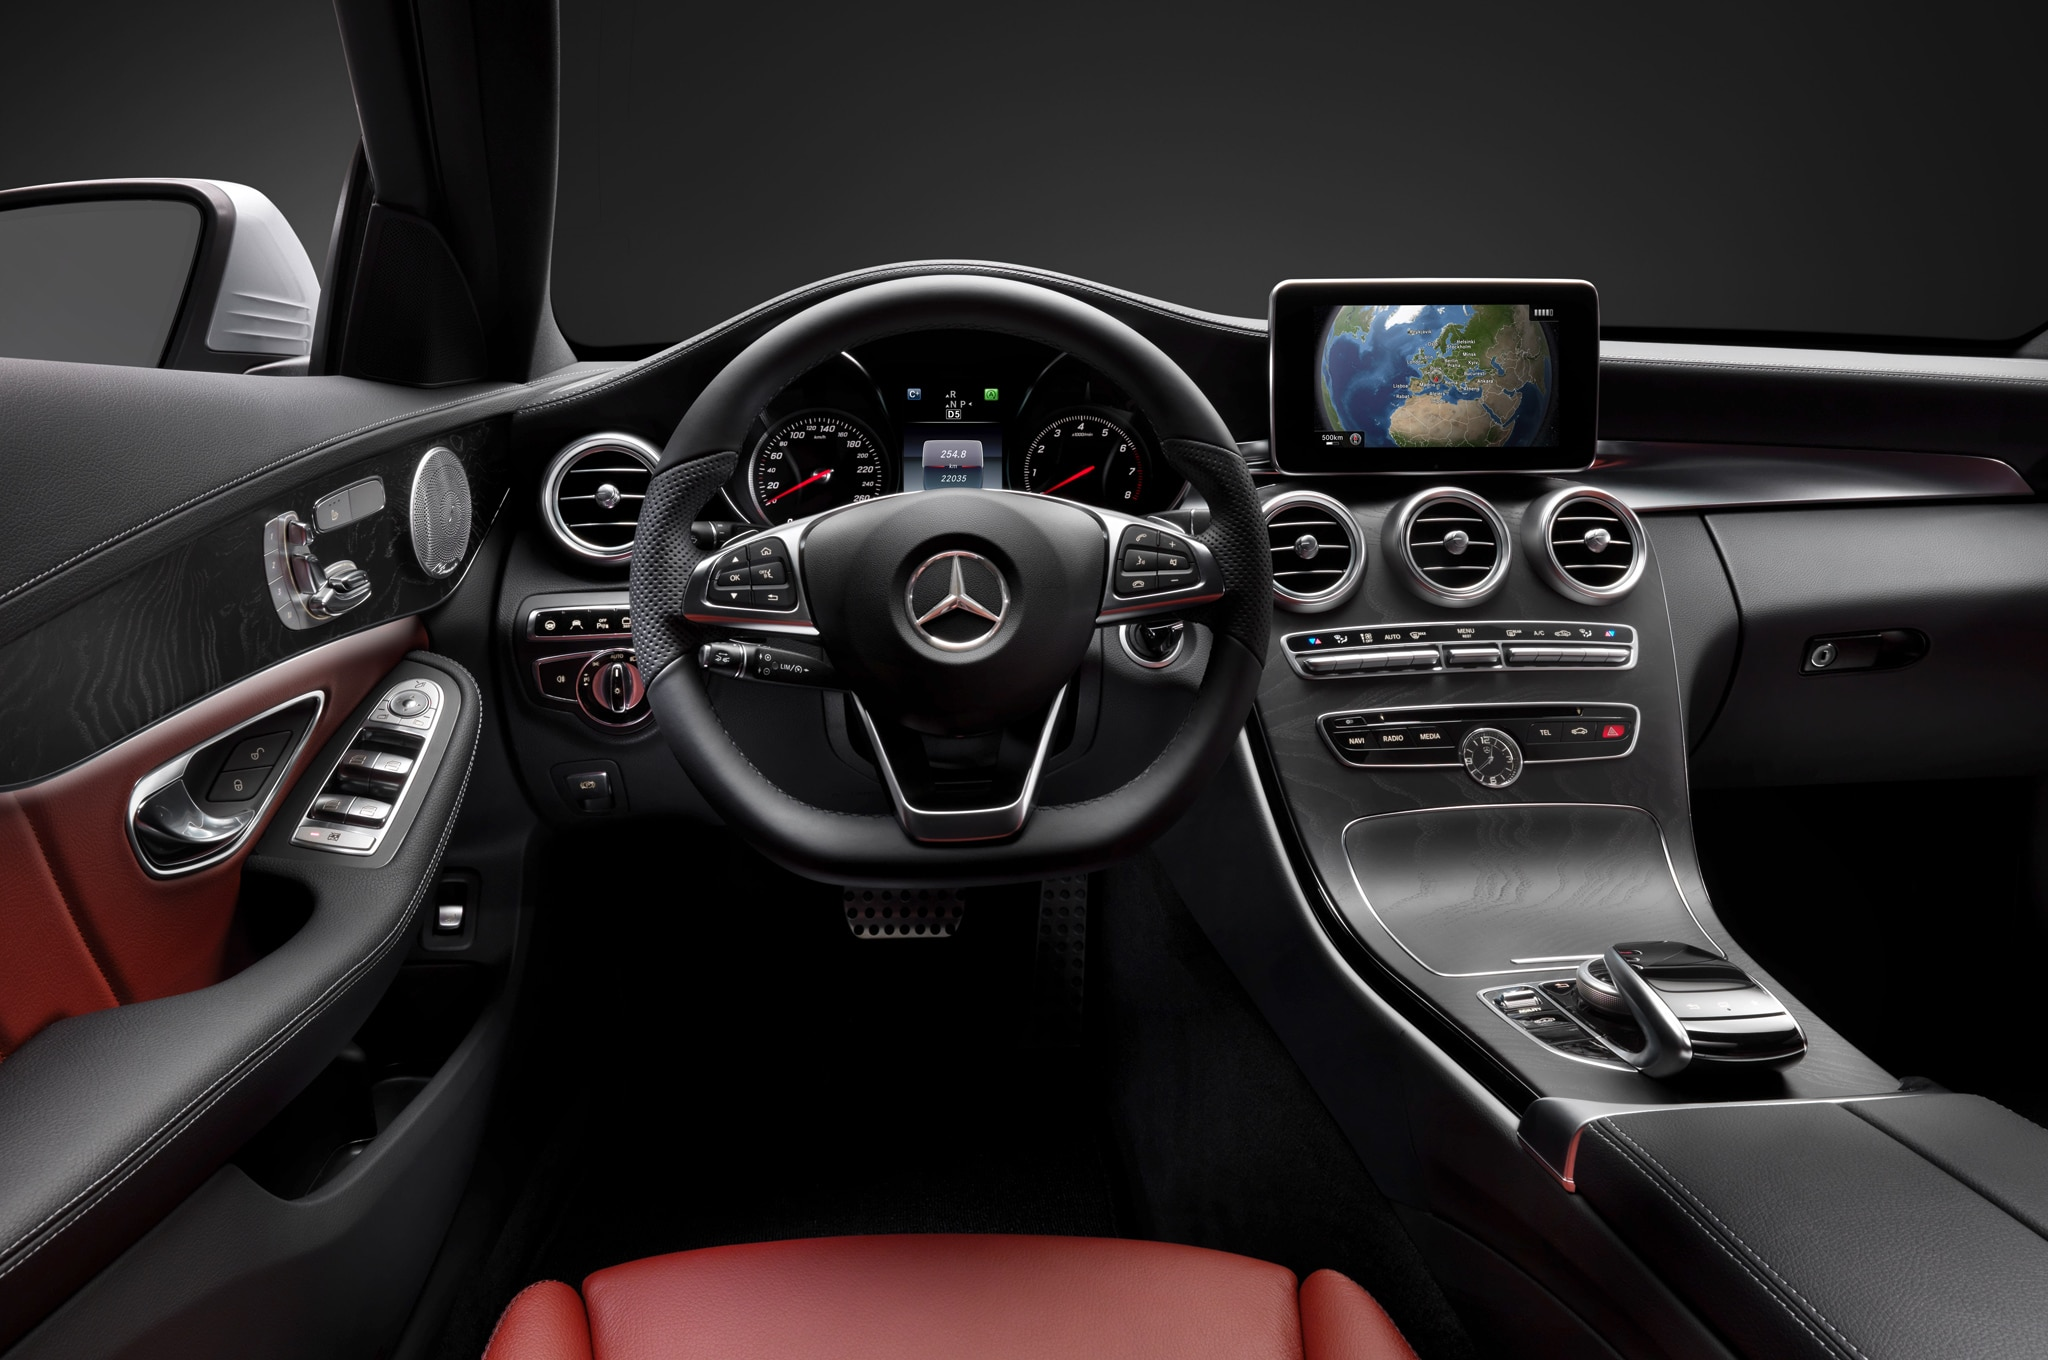 2015 mercedes-benz c-class interior, technologies revealed